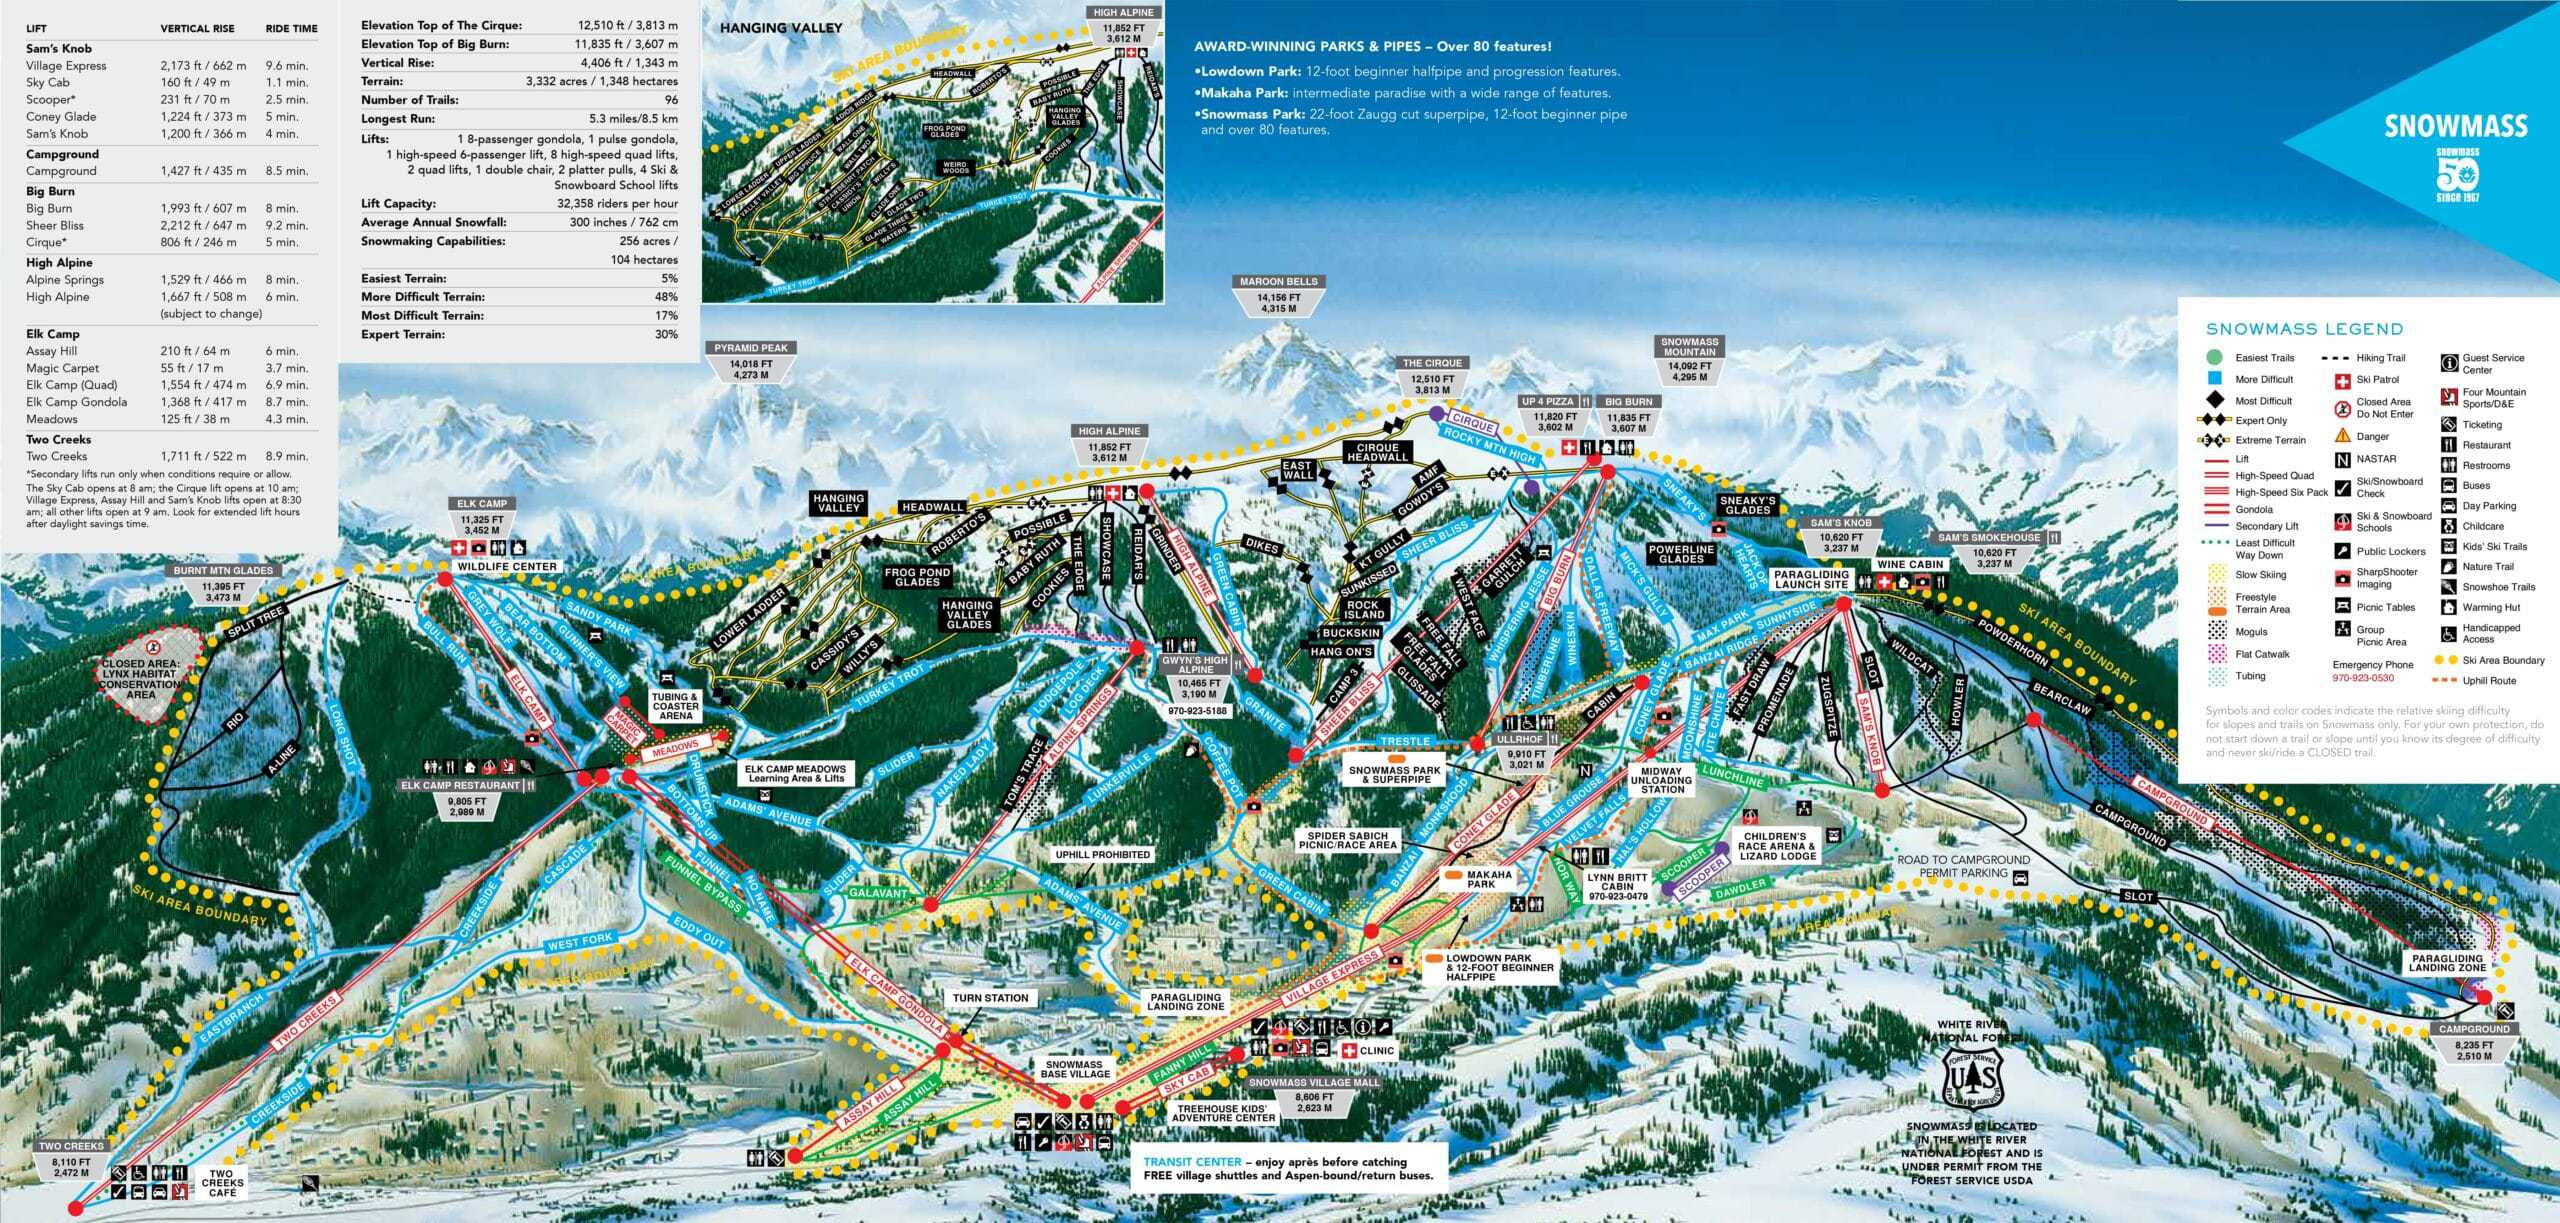 Aspen Snowmass Ski Trail Map 2018 scaled